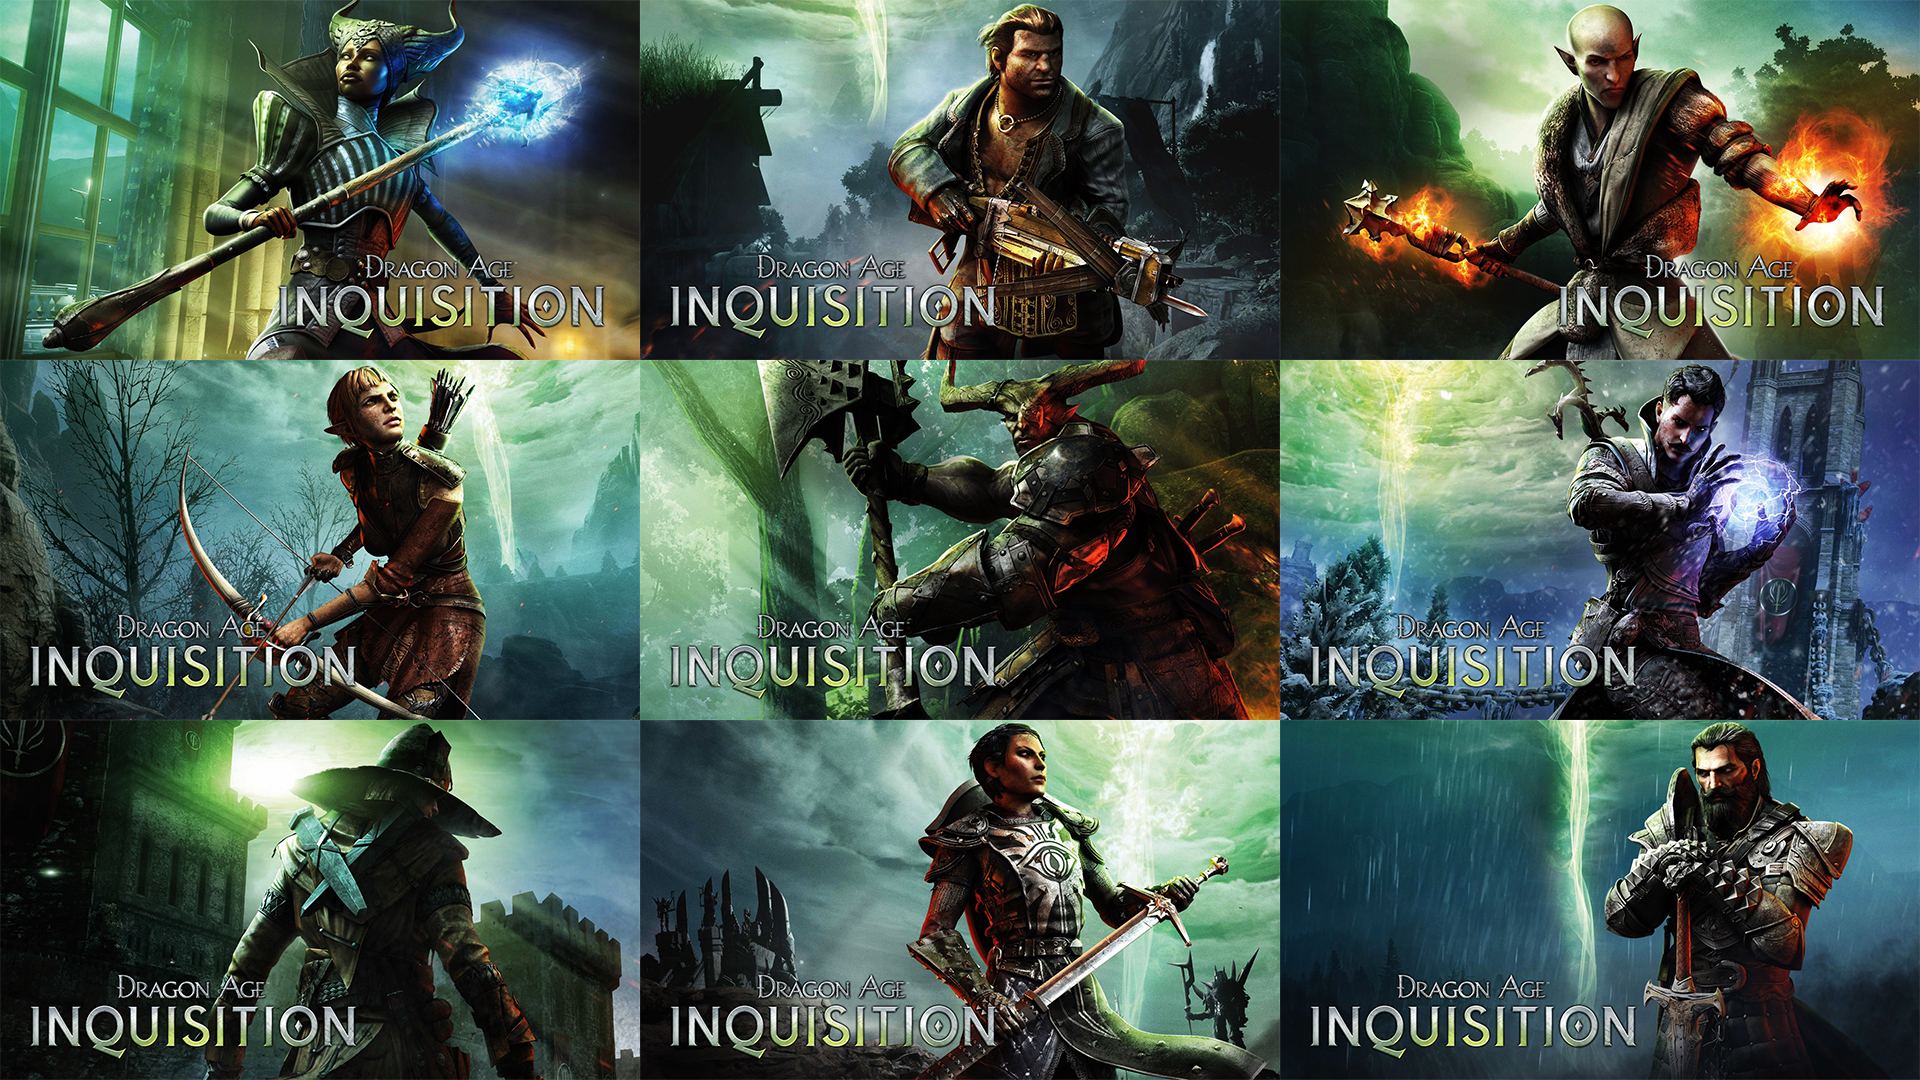 Dragon Age Inquisition Character Poster What Dragon Age Inquisition